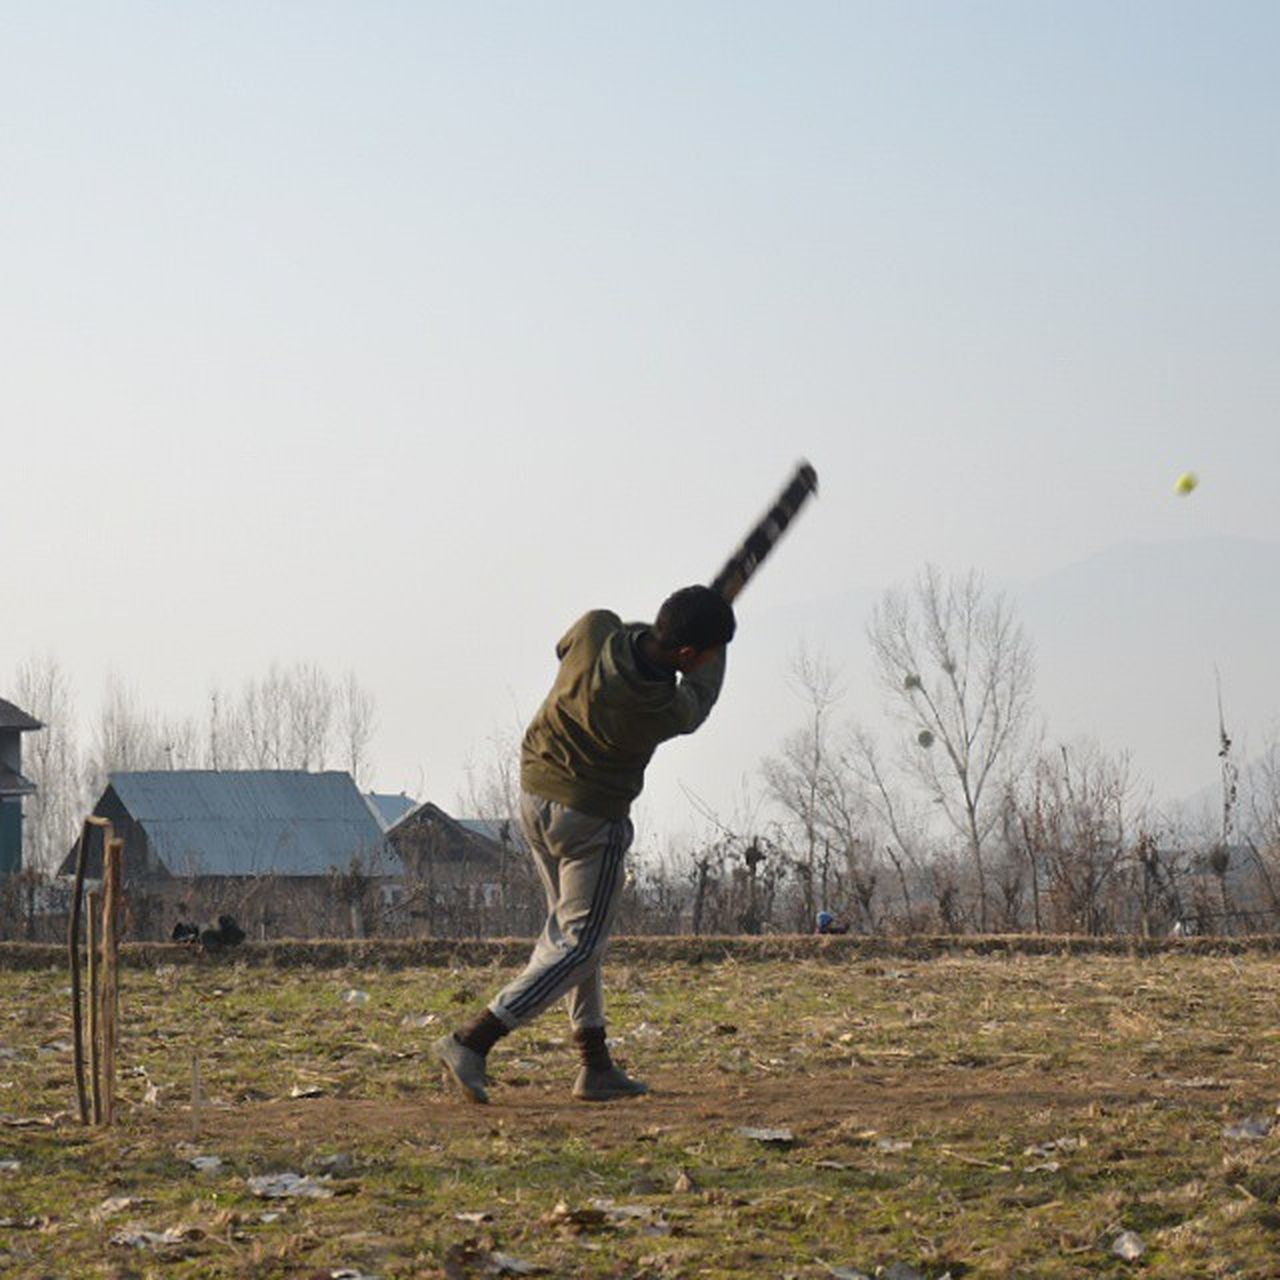 In Action Cricket Bandipur Countryside Village Aragam Cricketer Batsman Hitting Fields Kashmir Pakistan Freedom Itravel IStop Ilook Iphotograph IPhotographKashmir IExplore IExploreKashmir ExploringUnknown Iamme IAmRevo Revo Revoshotsphotography Revoshots kpc